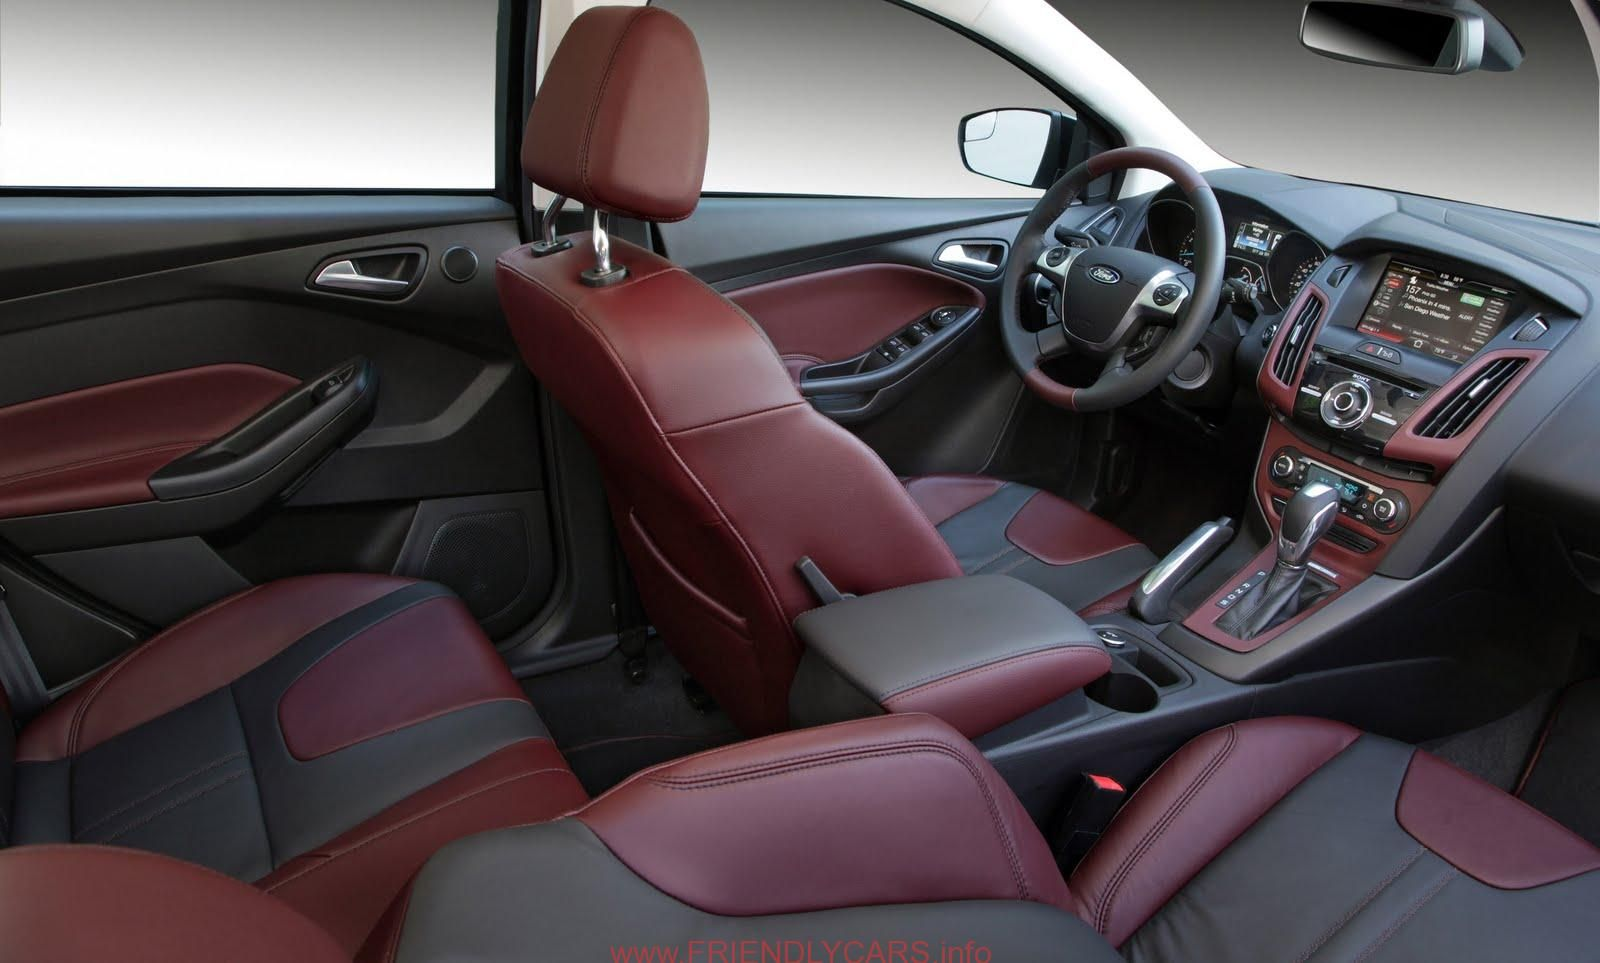 Nice 2012 ford focus titanium interior car images hd the only one stop online tool aiding